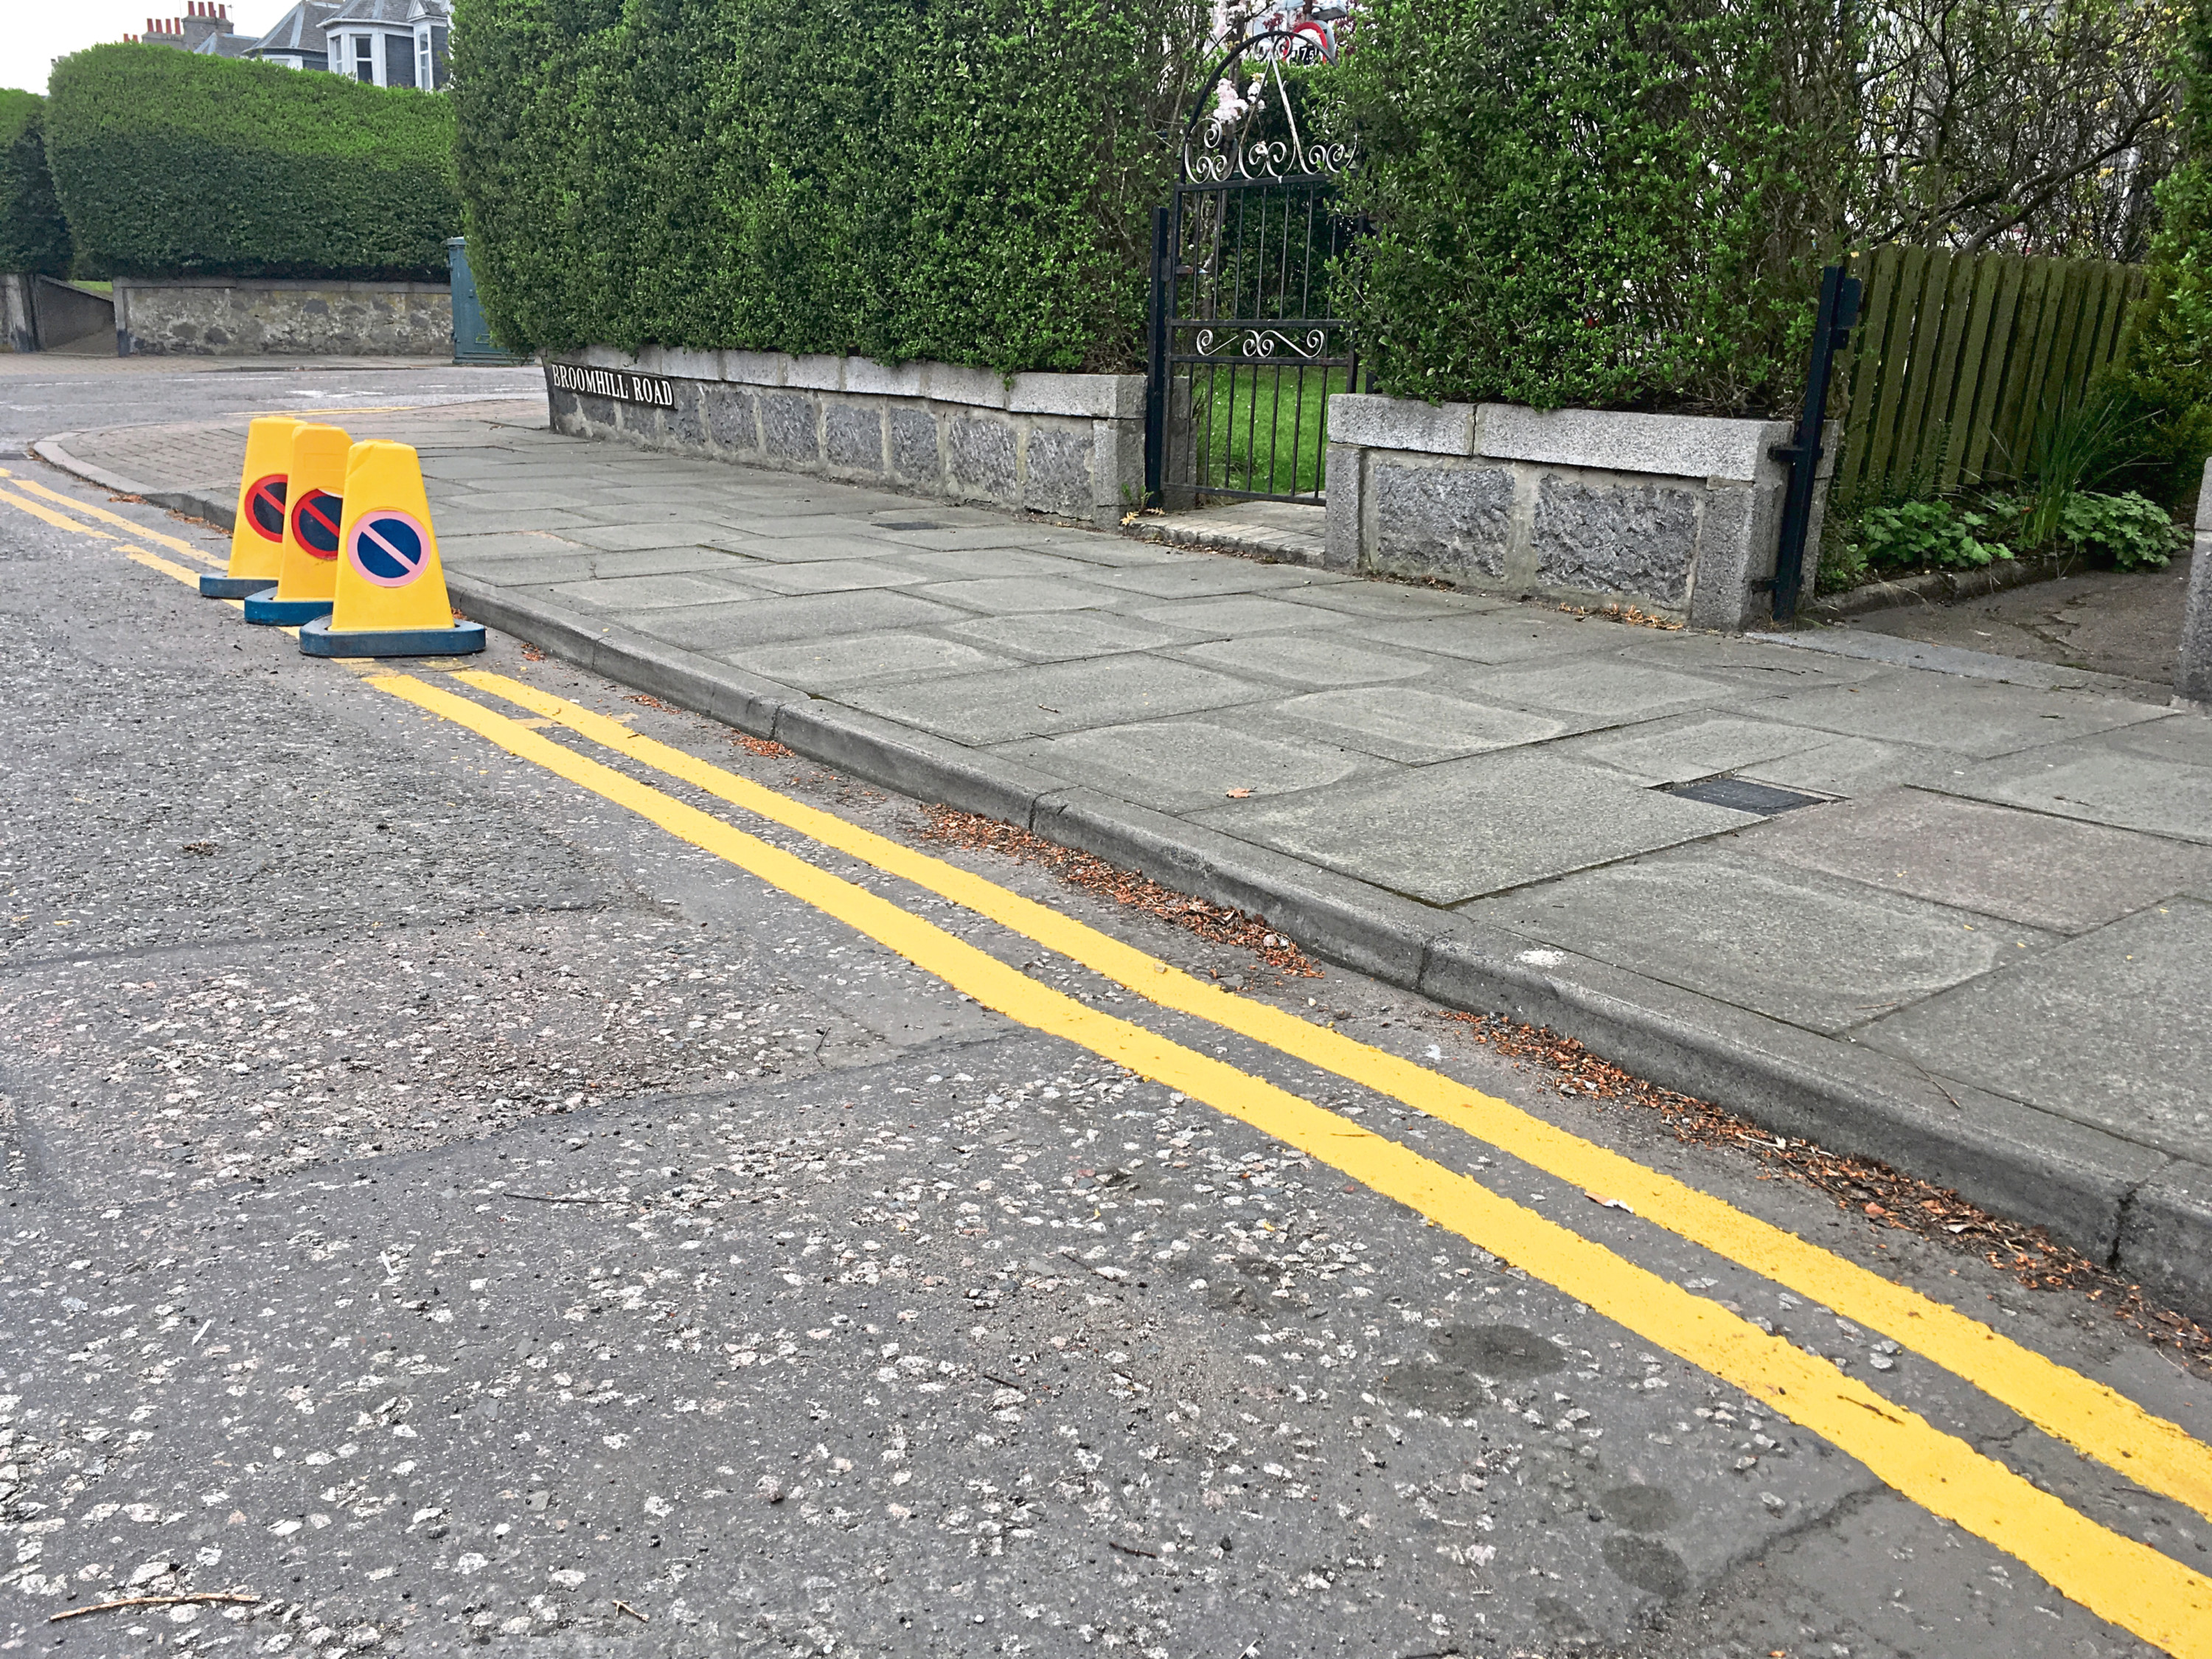 The mistakenly-painted yellow lines